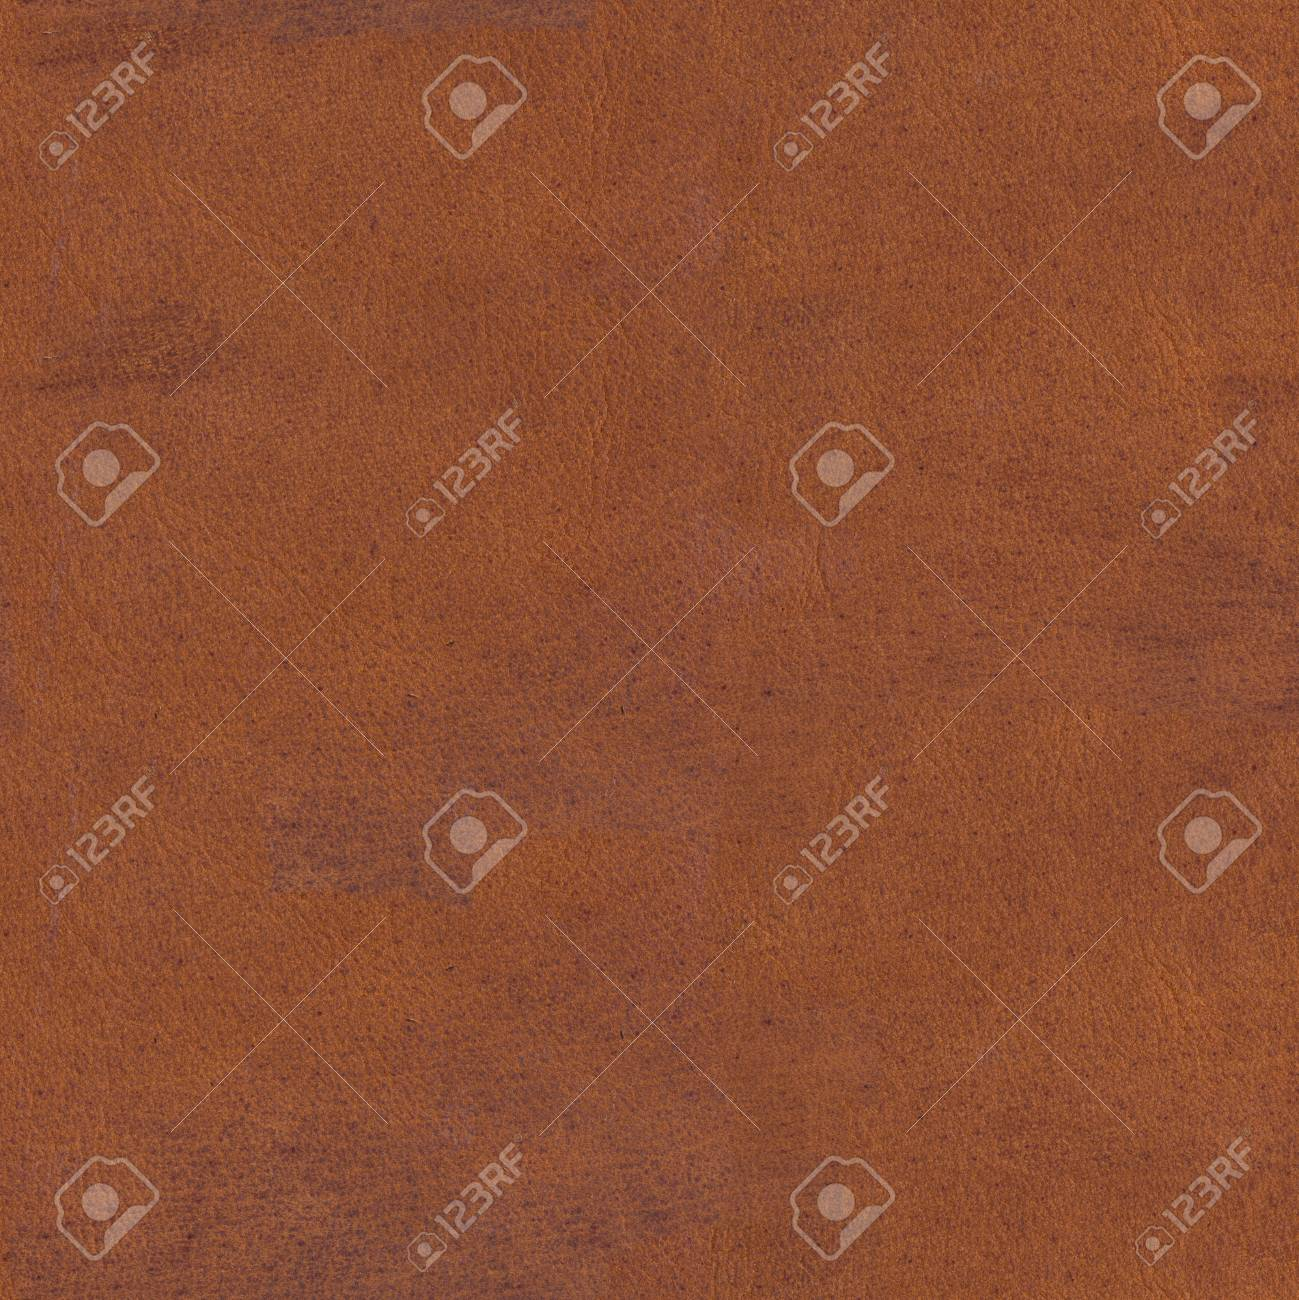 Old brown scratched leather texture. Seamless square background, tile ready. High resolution photo. - 80617221